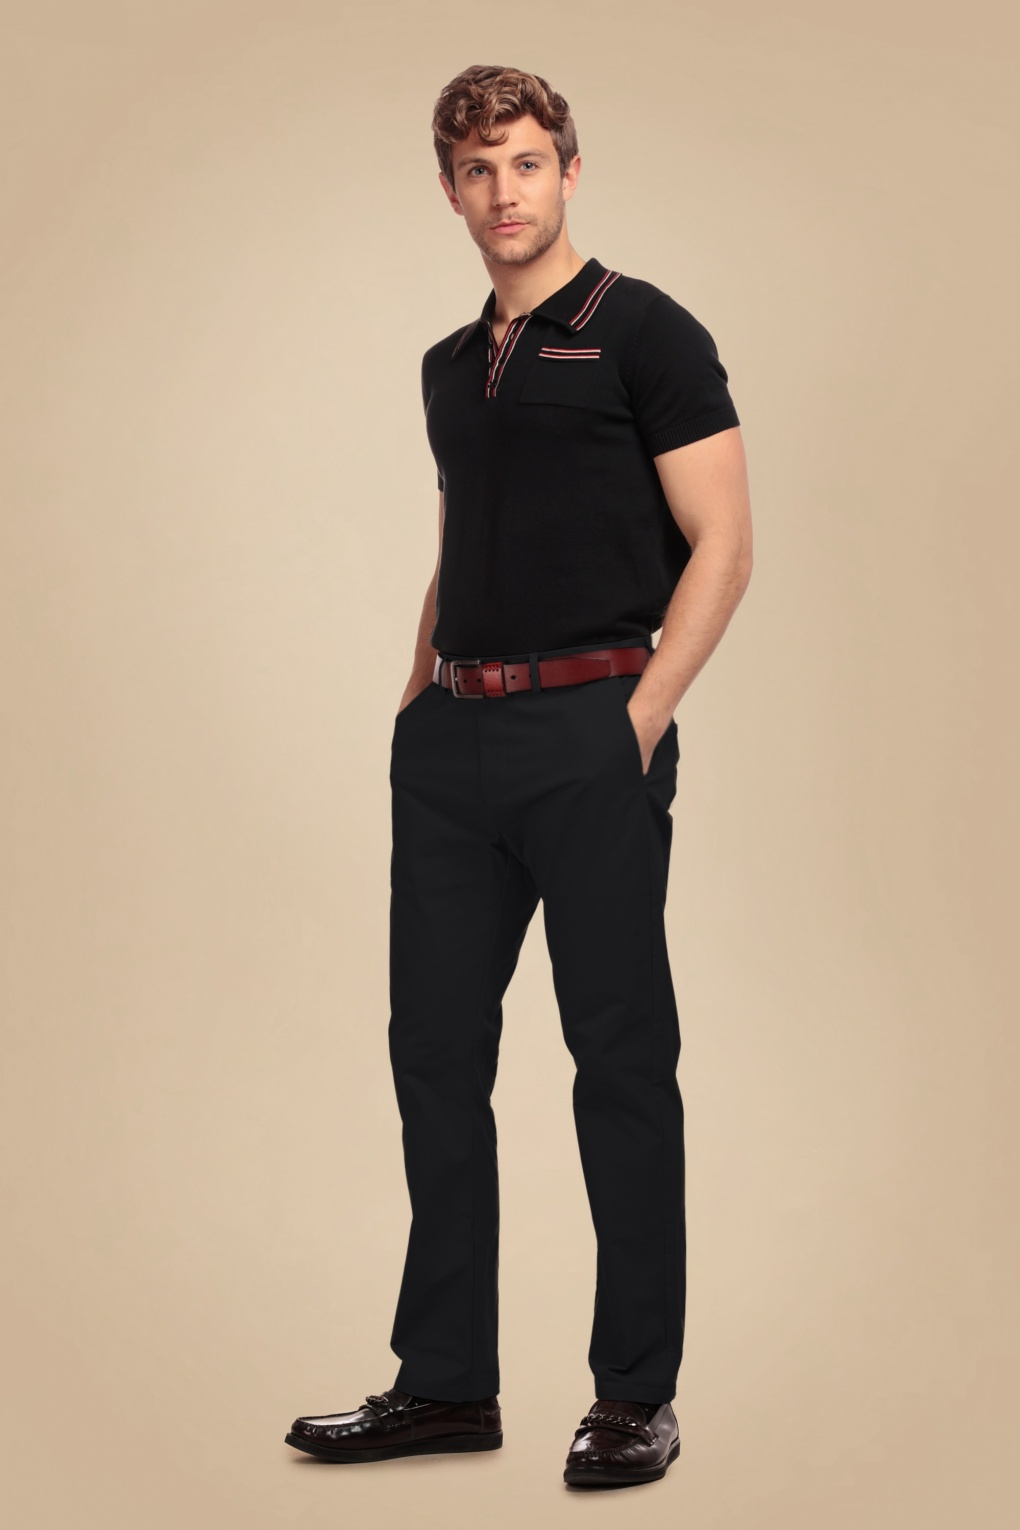 1950s Men's Pants, Trousers, Shorts | Rockabilly Jeans, Greaser Styles 50s Danny Trousers in Black £66.40 AT vintagedancer.com